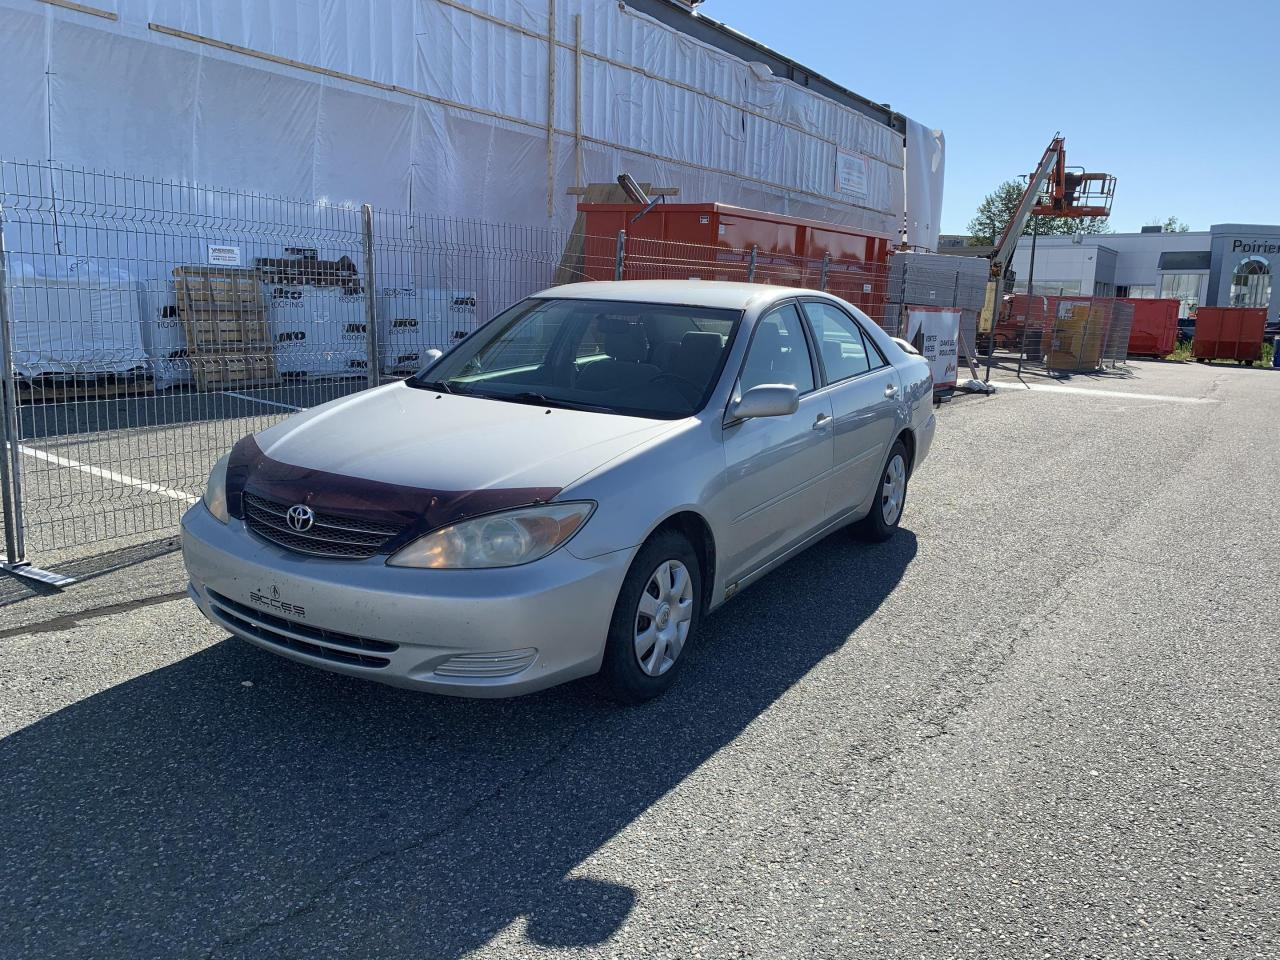 used 2004 toyota camry 4dr sdn le auto for sale in rouyn-noranda, quebec carpages.ca